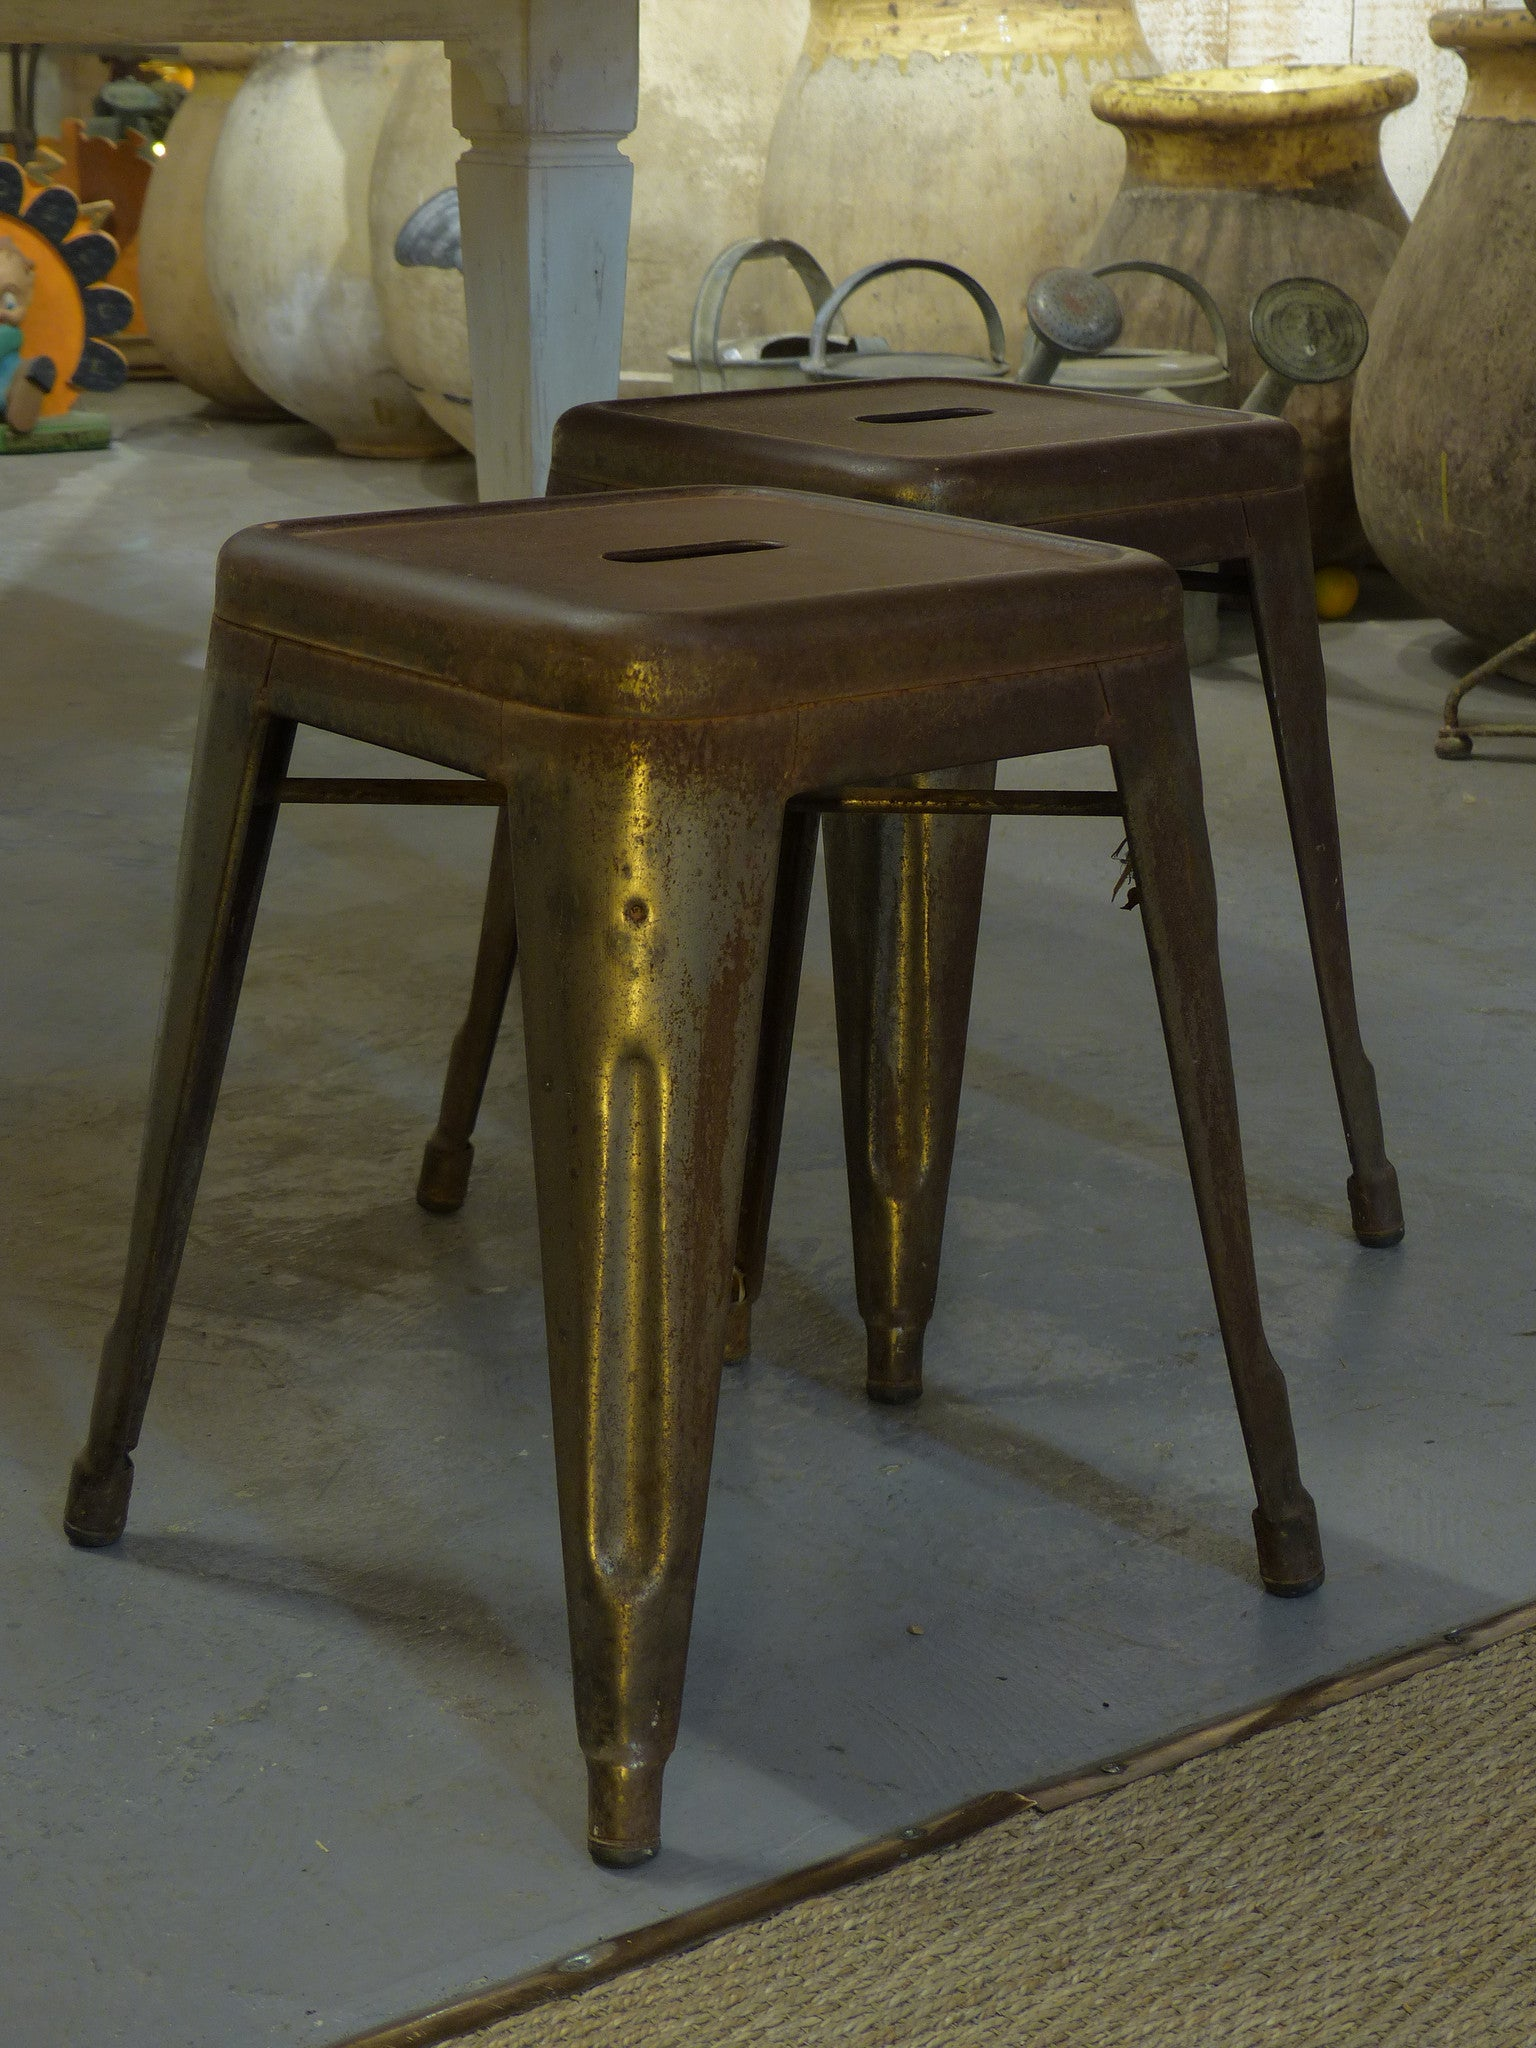 Pair of original French Tolix stools - 1930's